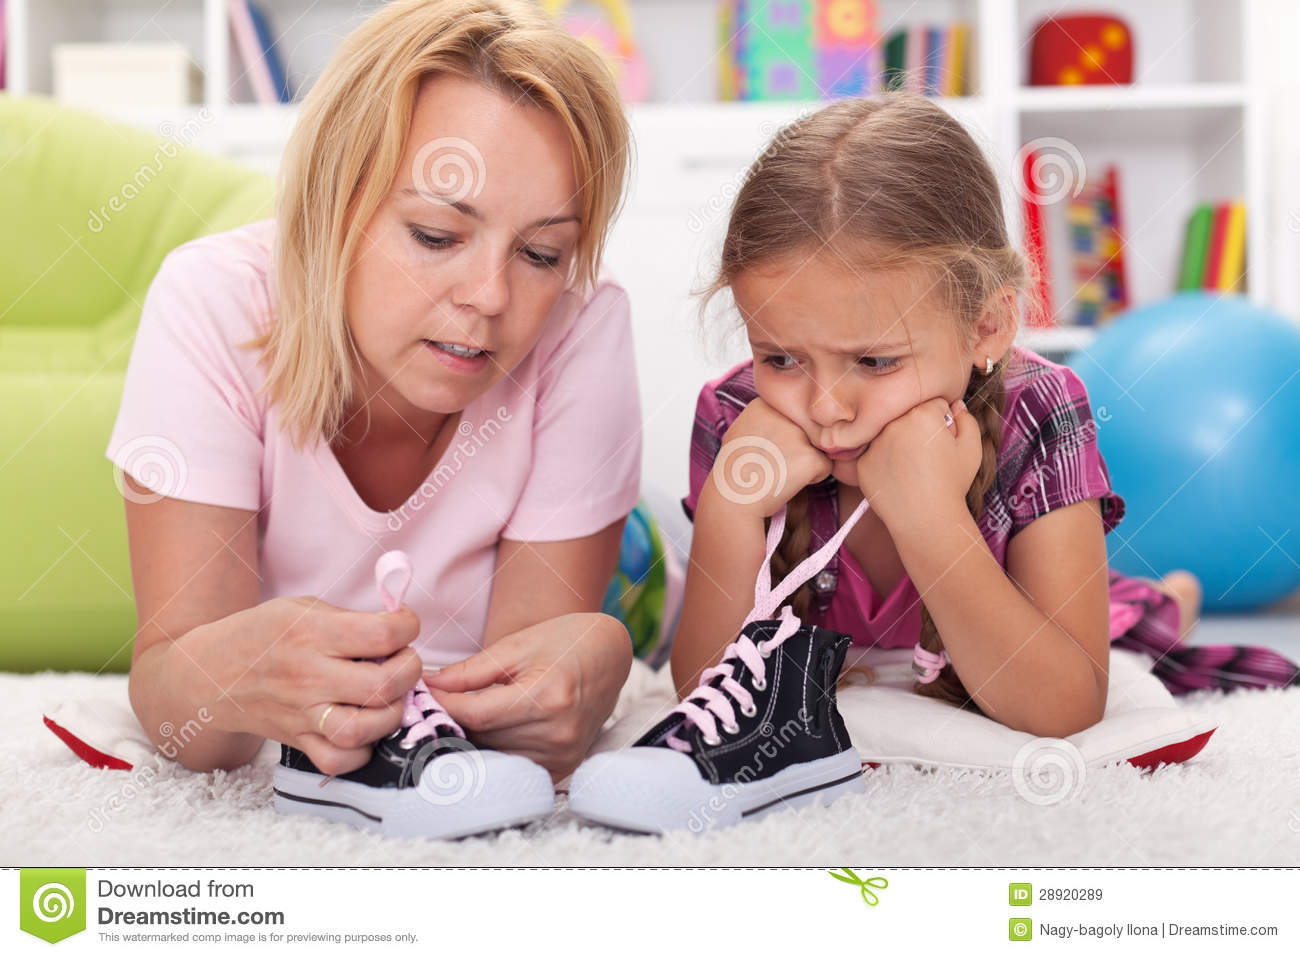 Mother teaching little unhappy girl to tie her shoes showing the